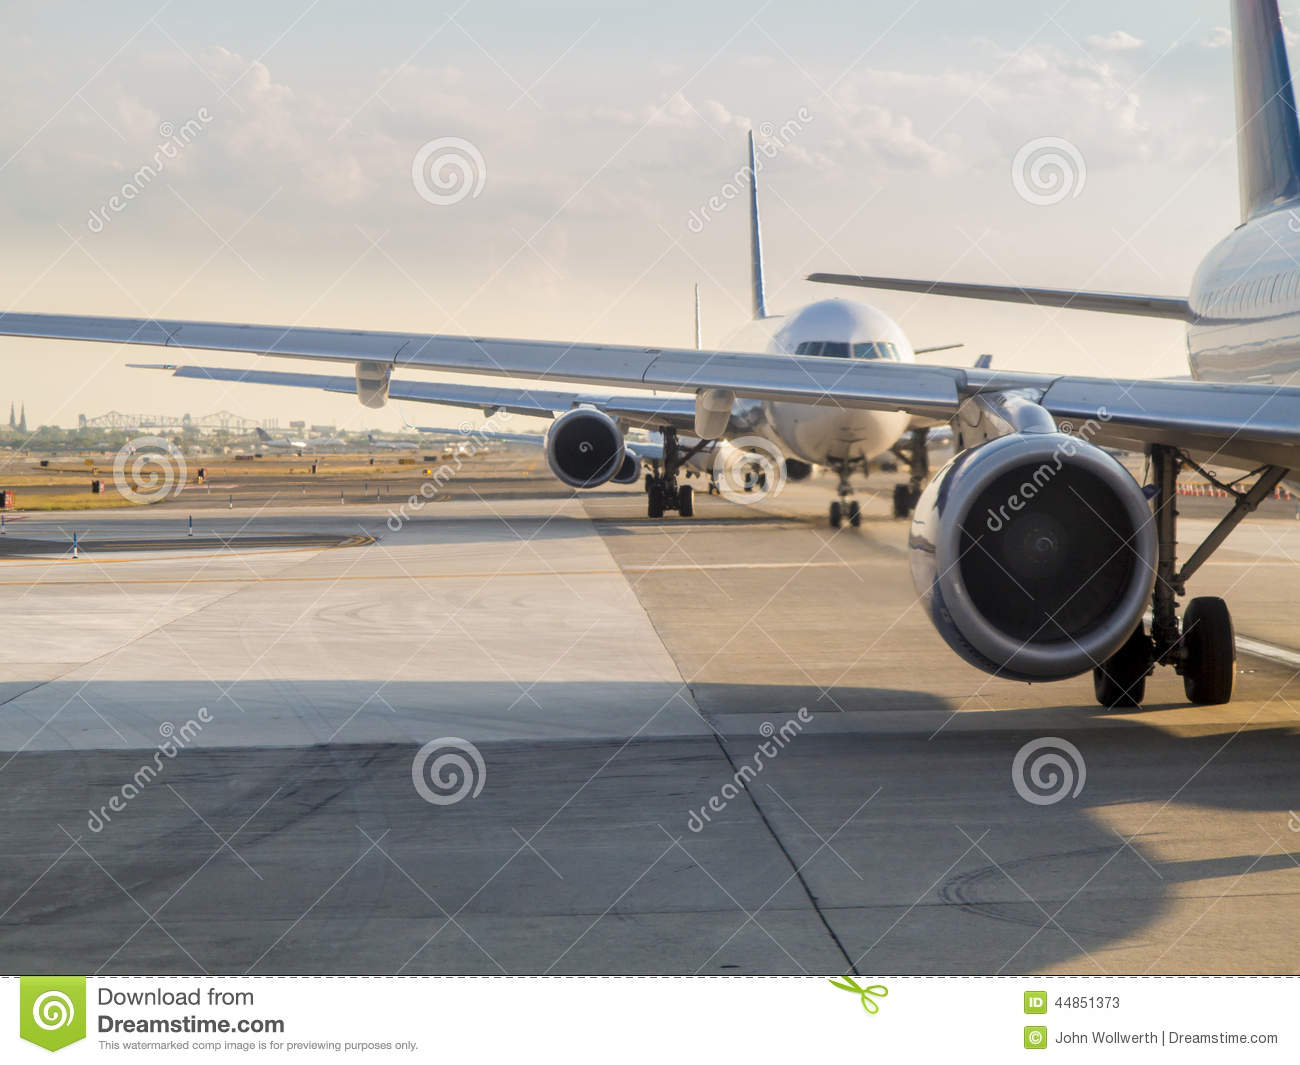 Planes waiting for takeoff